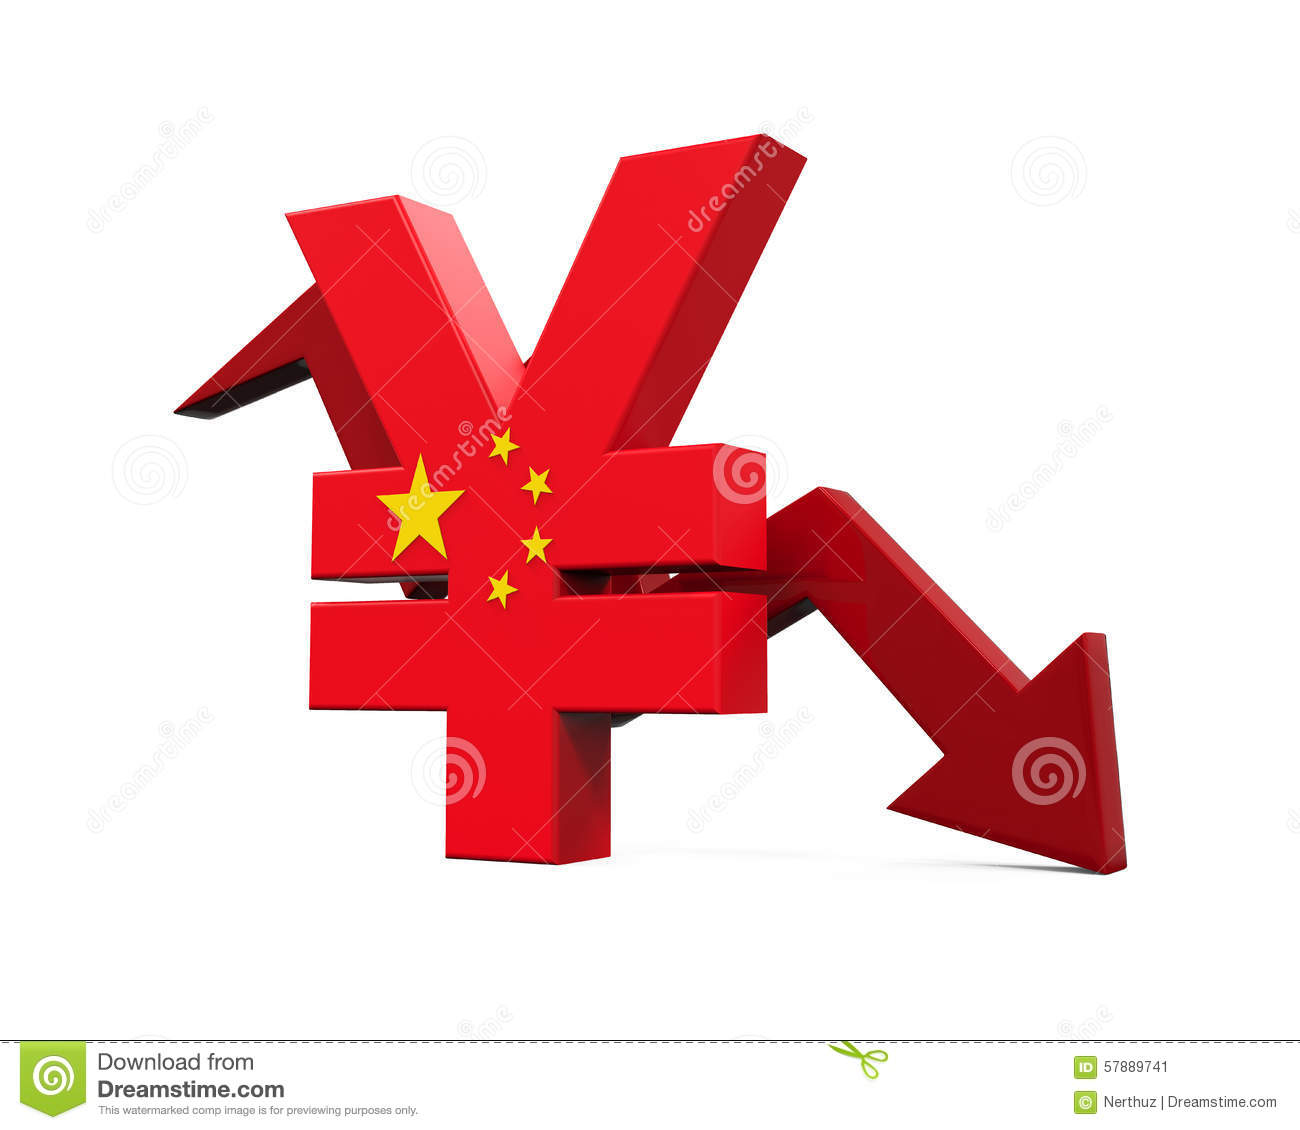 Chinese yuan symbol stock illustration illustration of render chinese yuan symbol and red arrow stock image biocorpaavc Image collections